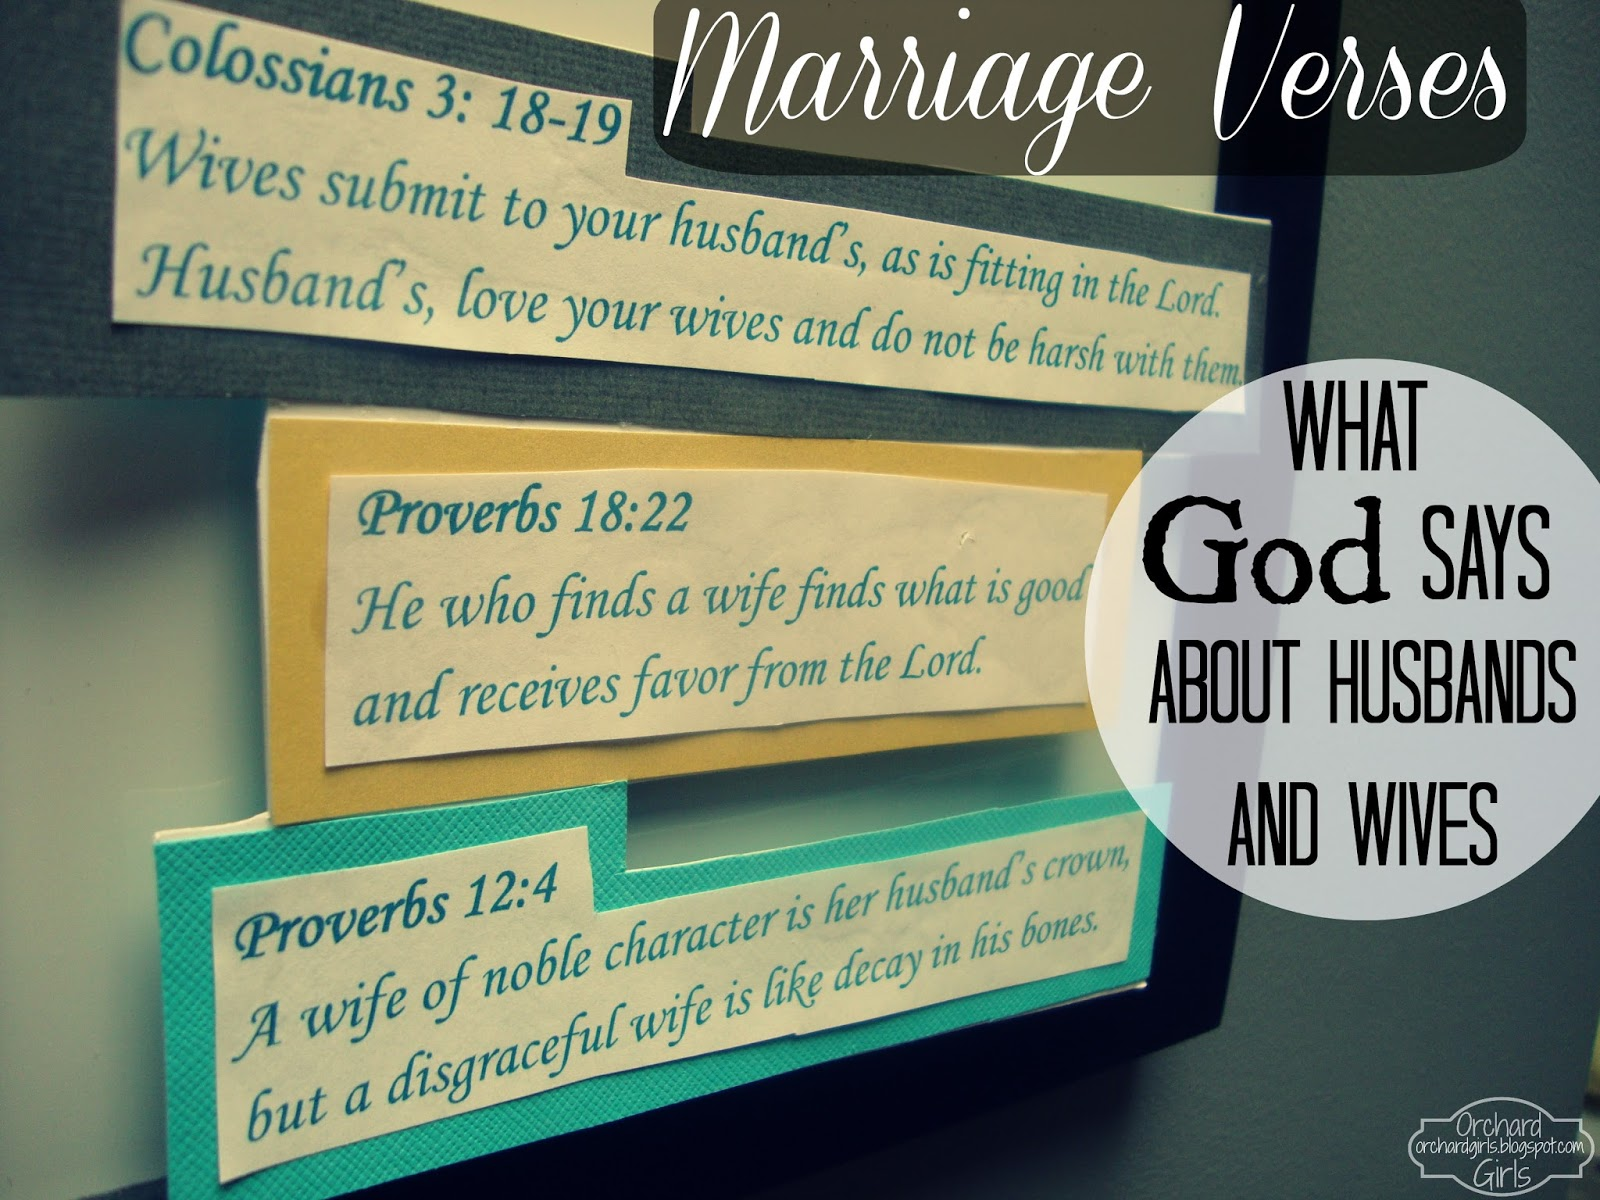 Bible Quotes On Love And Marriage Love Quote Bible Marriage Bible Quotes About Marriage Quotesgram.